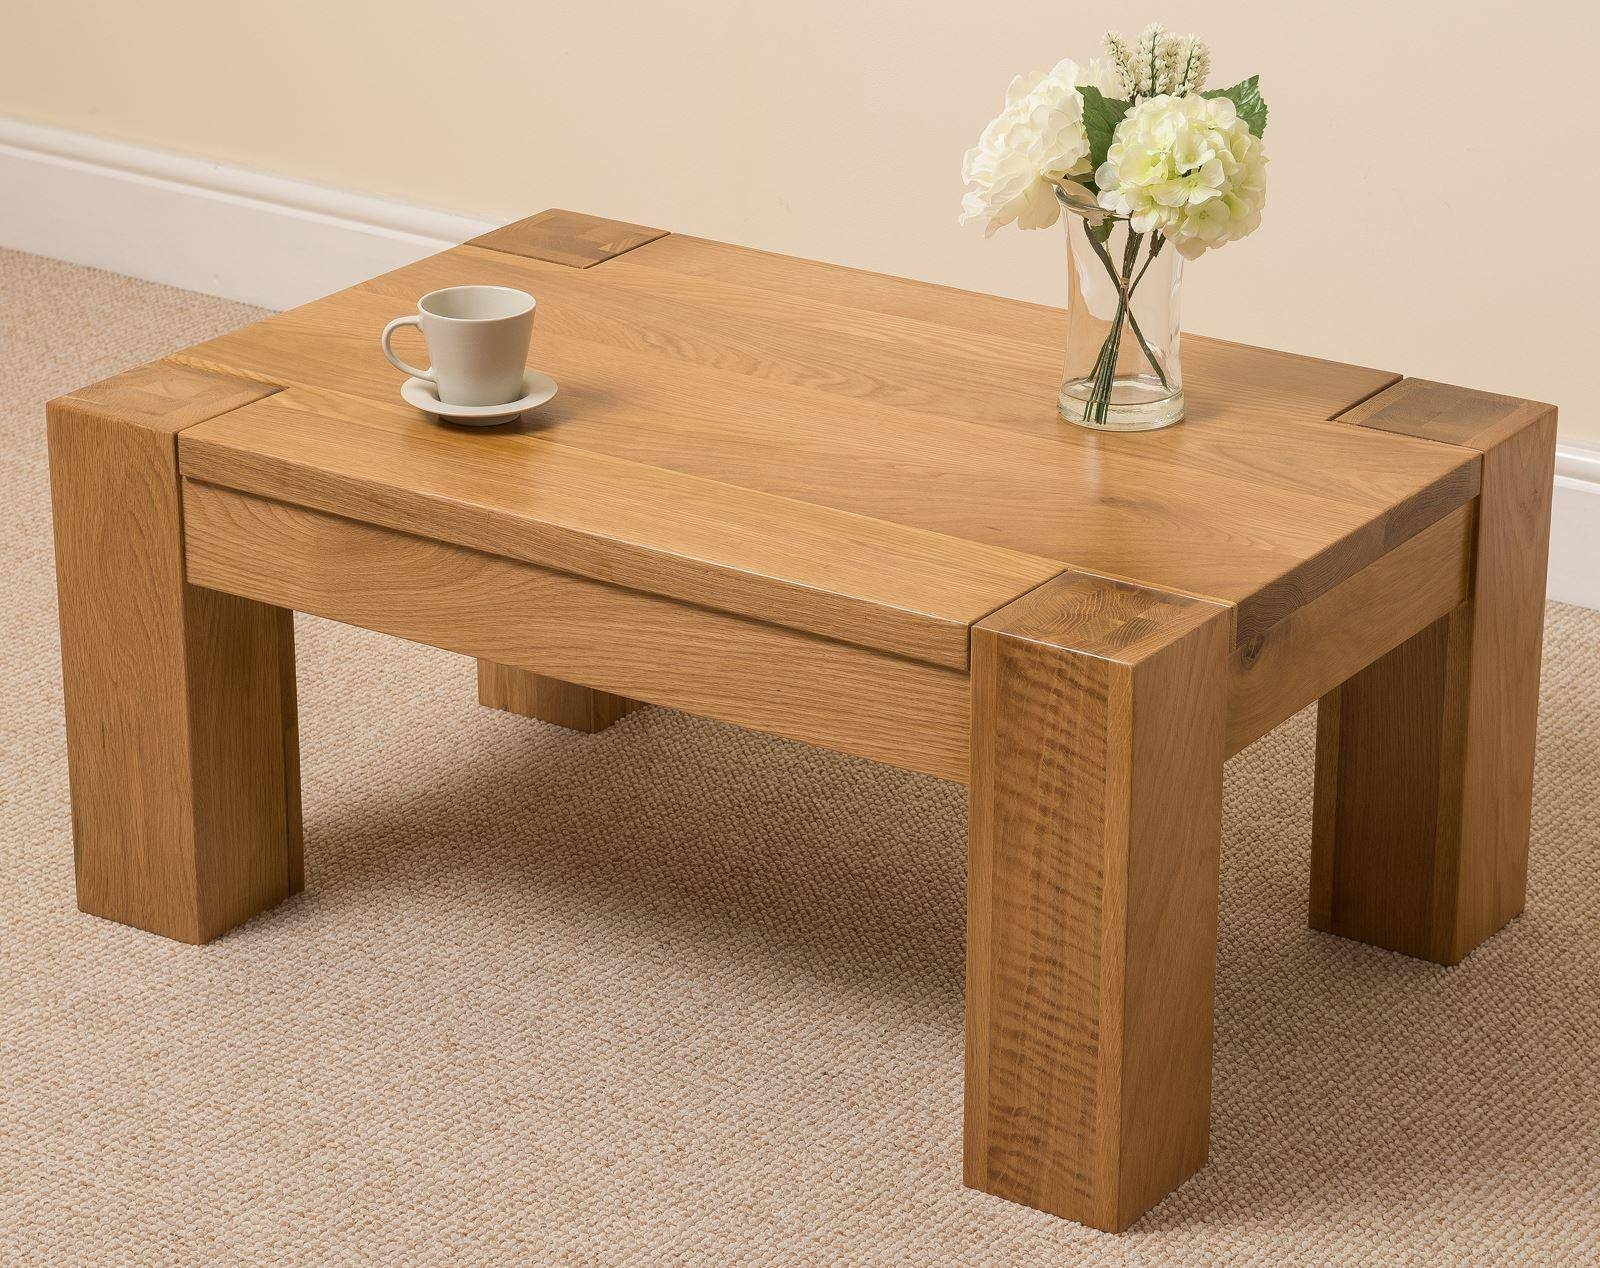 Kuba Solid Oak Coffee Table | Oak Furniture King Pertaining To Chunky Oak Coffee Tables (View 23 of 30)